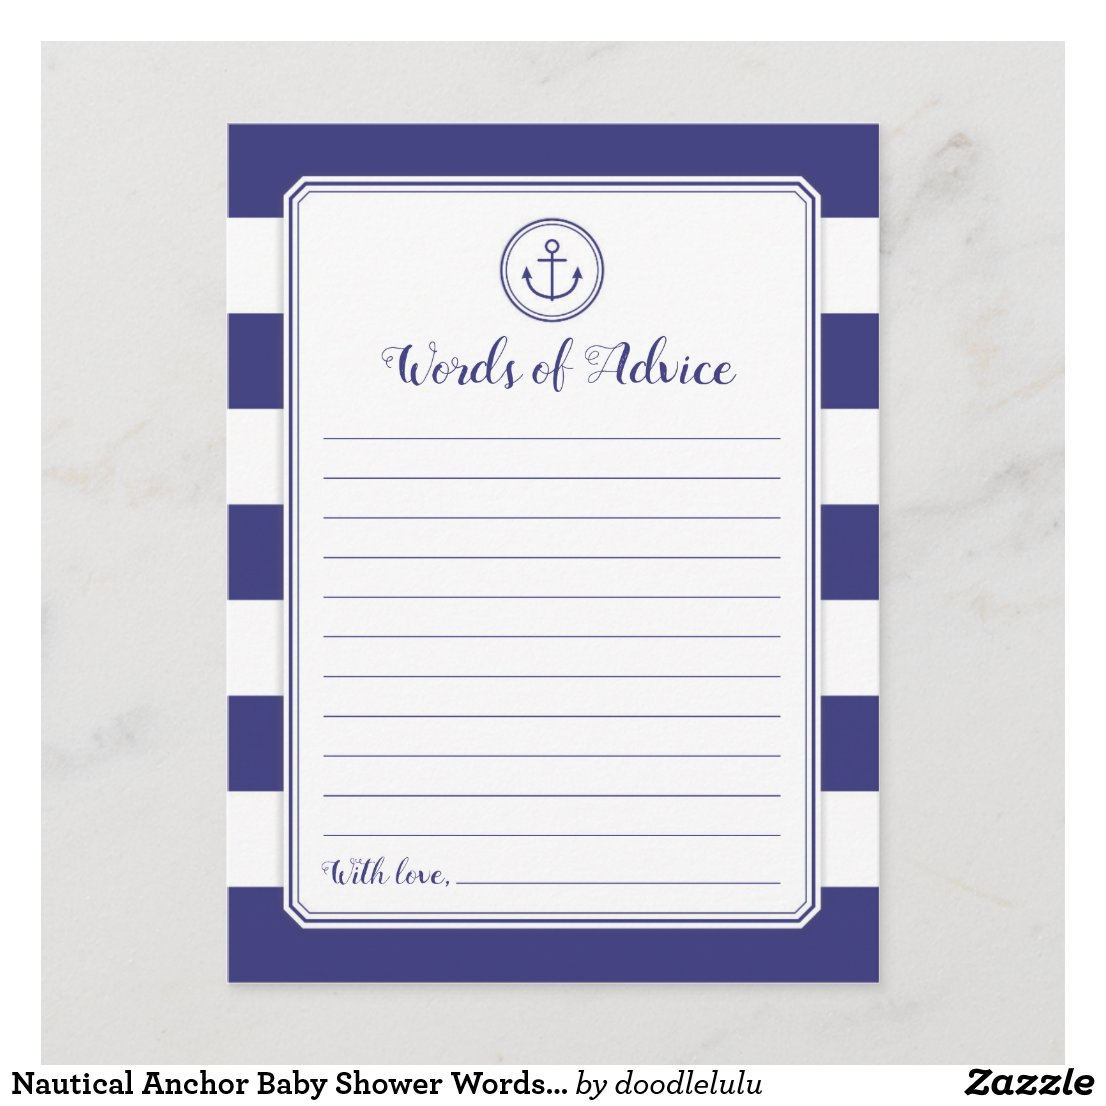 Nautical Anchor Baby Shower Words of Advice